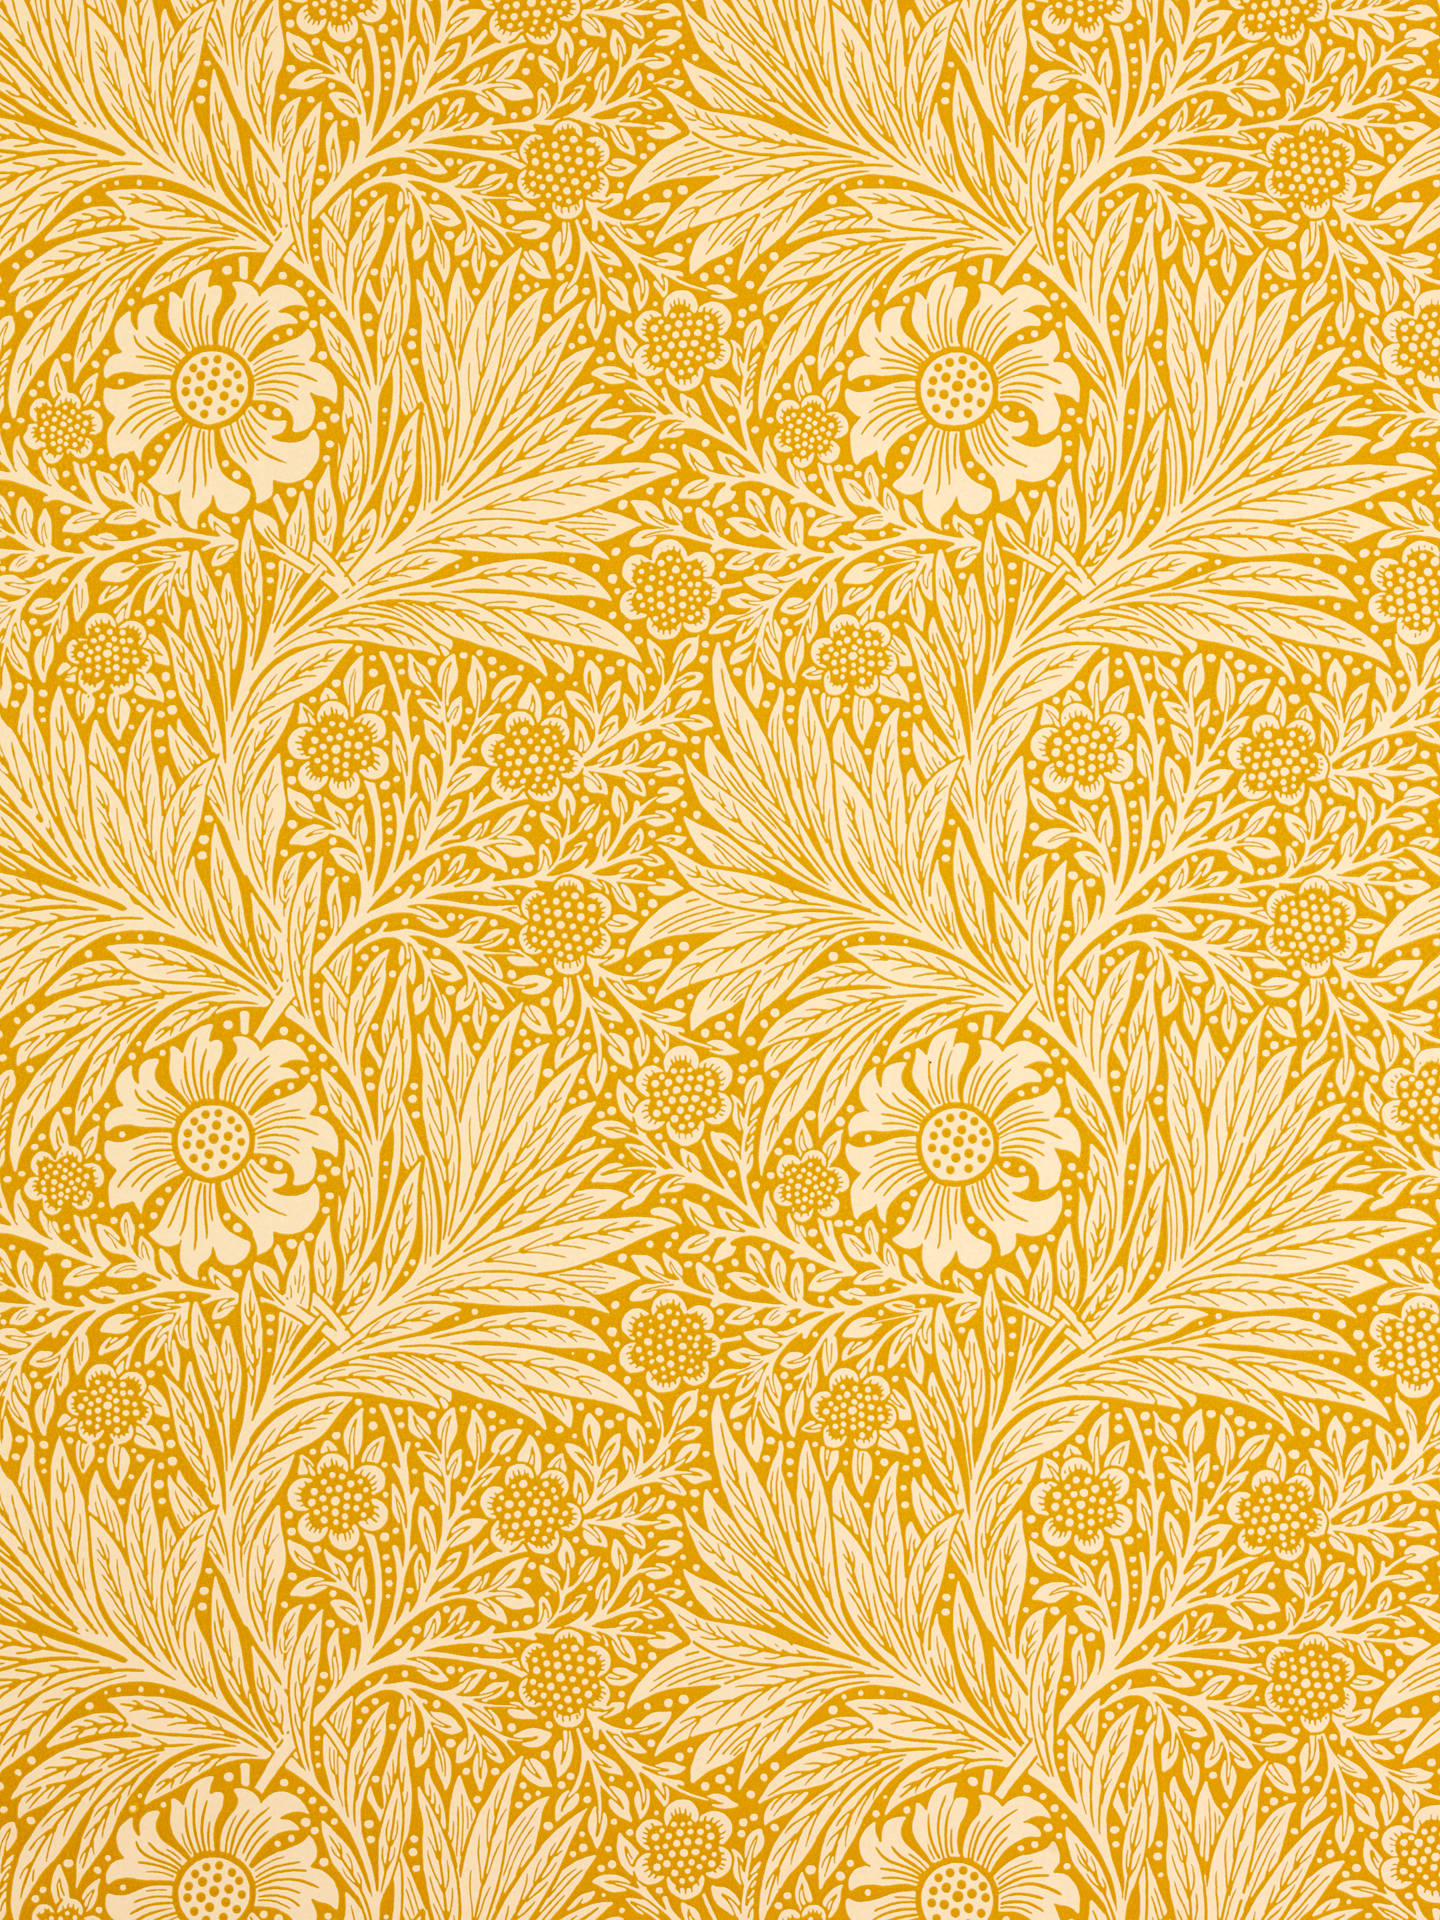 Buy Morris & Co. Marigold, Cowslip, 210370 Online at johnlewis.com